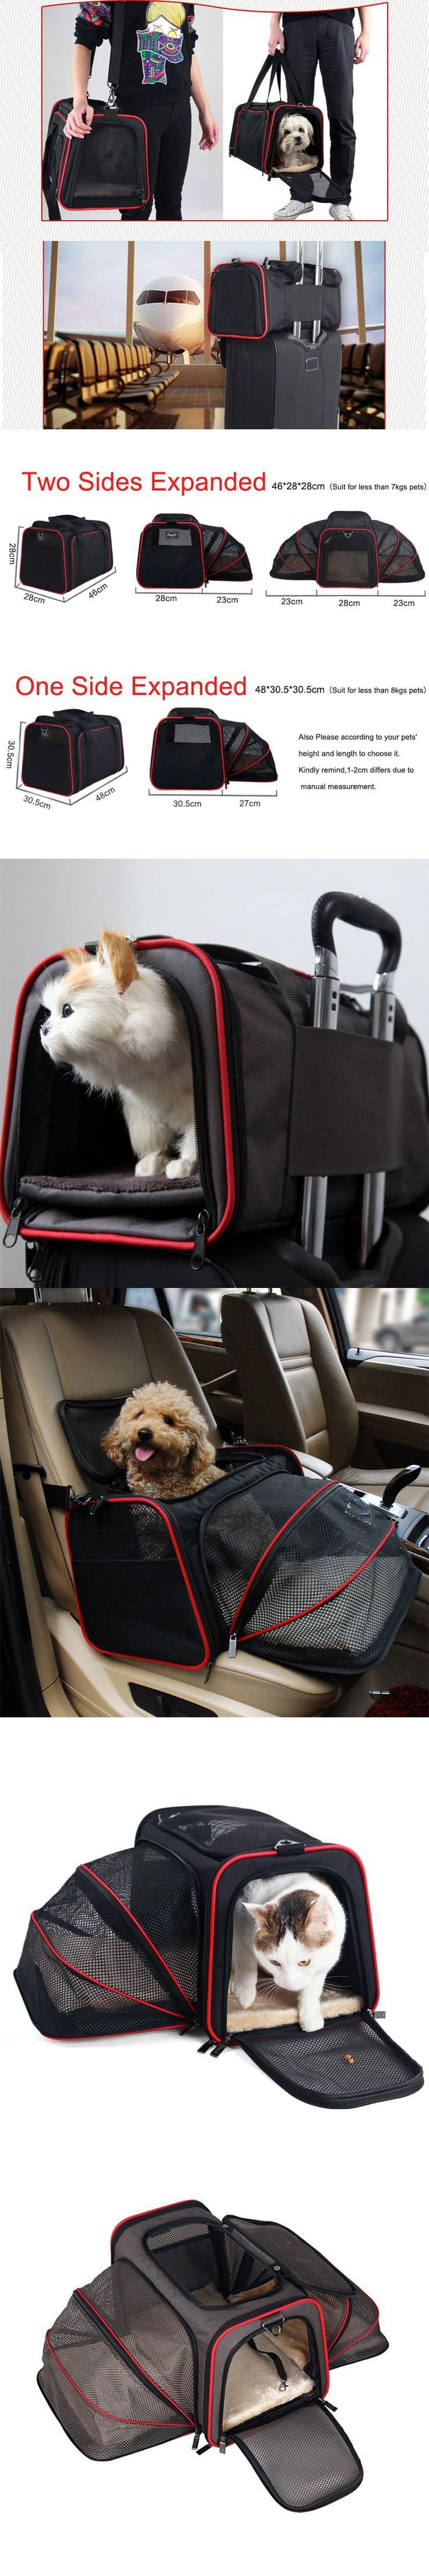 Expandable Portable Dog Travel Bag Chihuahua Dog Cat Cage Container Car Travel Accessories For Small Pets